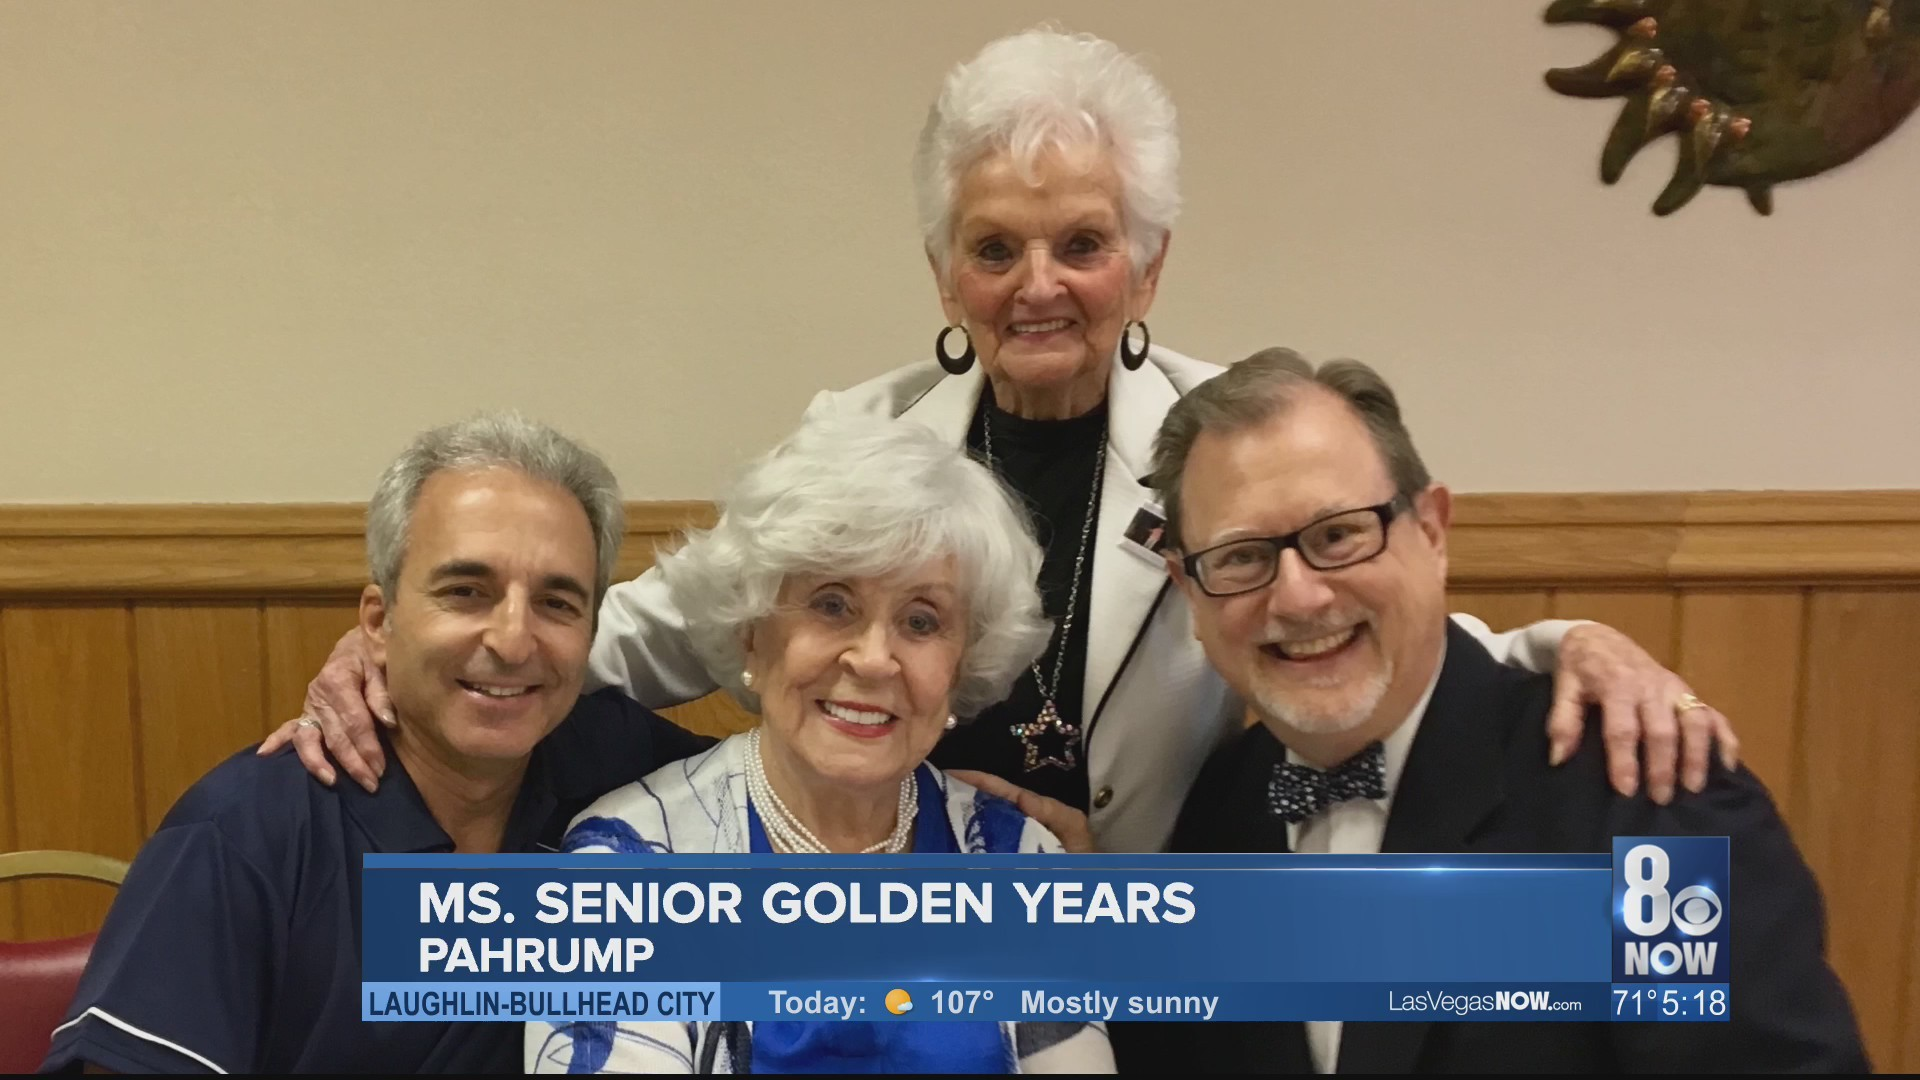 Ms Senior Golden Years Pageant in Pahrump